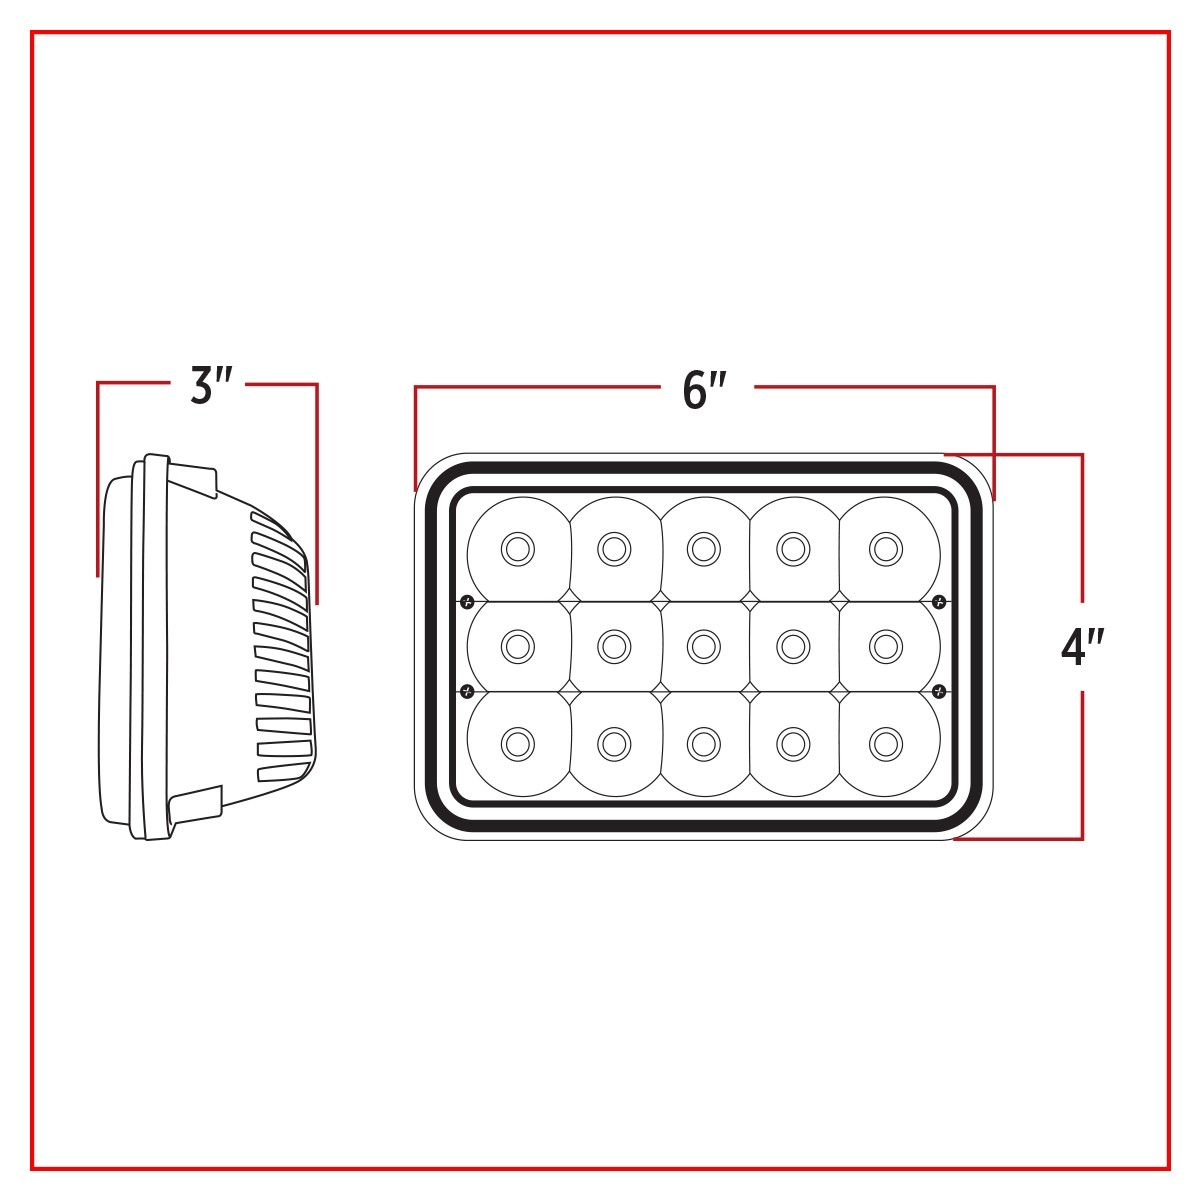 hight resolution of h6545 wiring diagram wiring diagram homeh6545 headlight wiring diagram wiring diagram article review h6545 wiring diagram